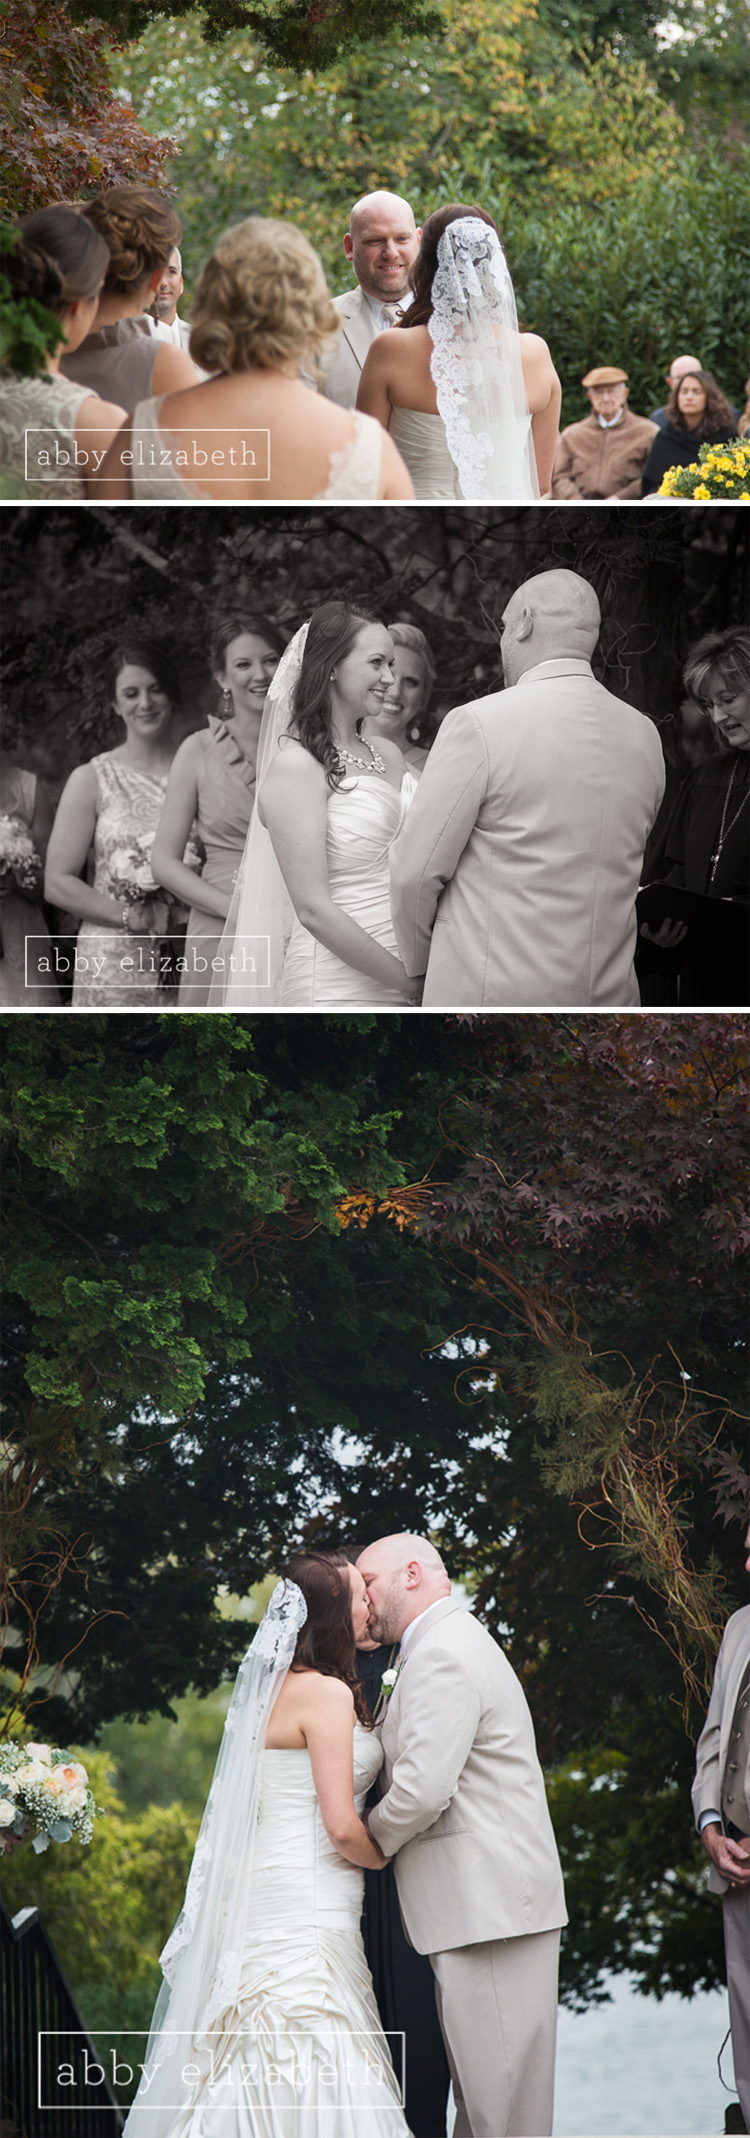 Crescent_Bend_Fall_Wedding_Knoxville_Vows_first_kiss_ceremony.jpg